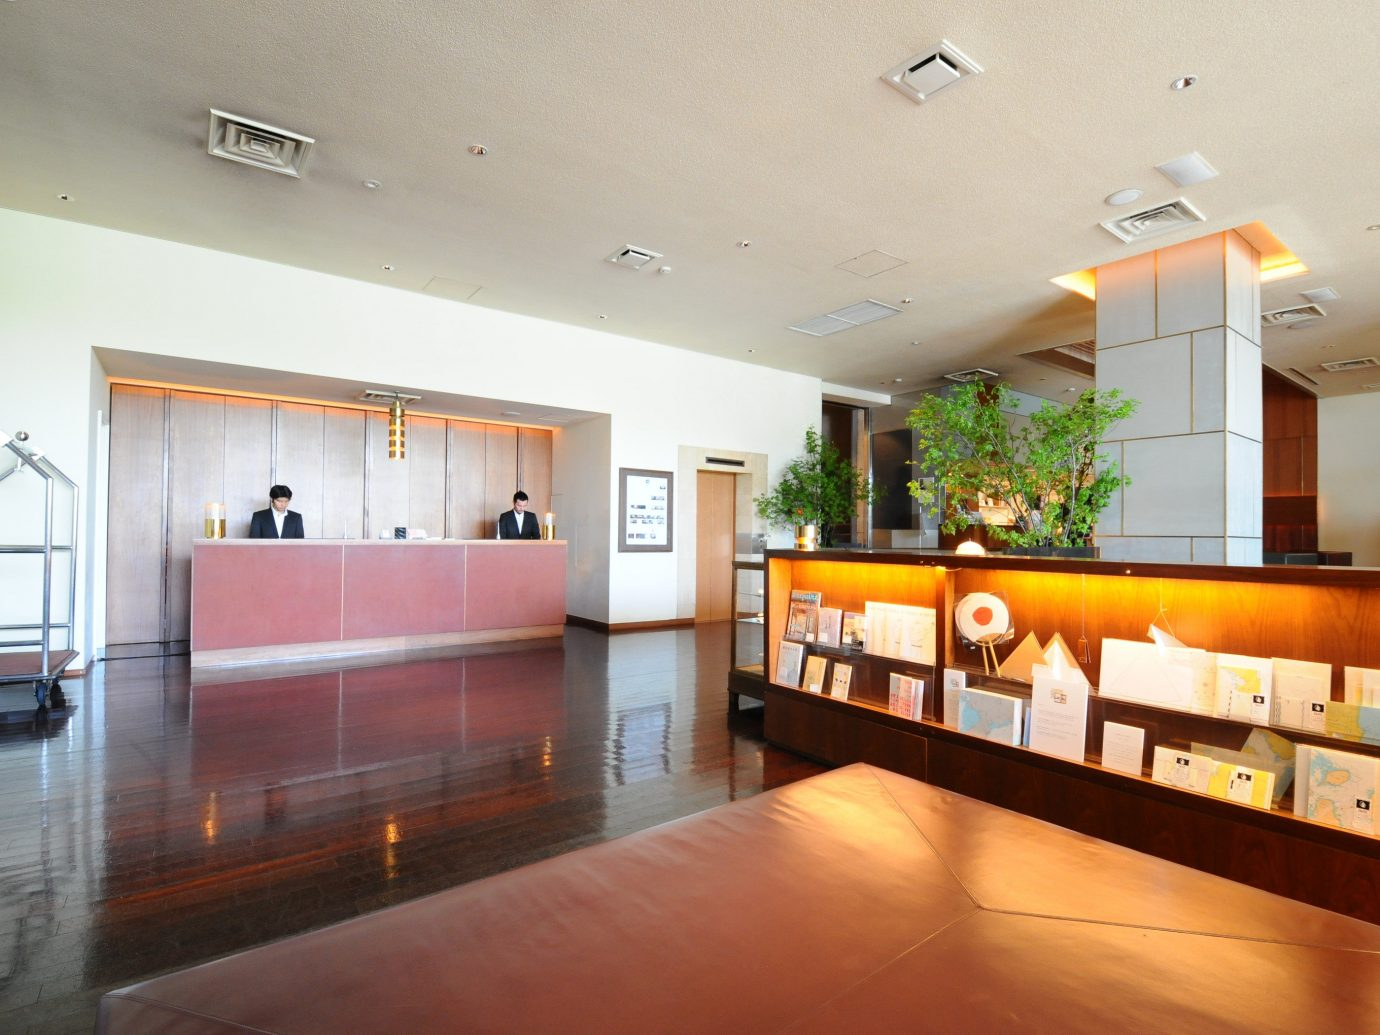 Hotels Japan Tokyo floor indoor wall ceiling Lobby property room Living interior design estate real estate condominium home Design living room furniture wood